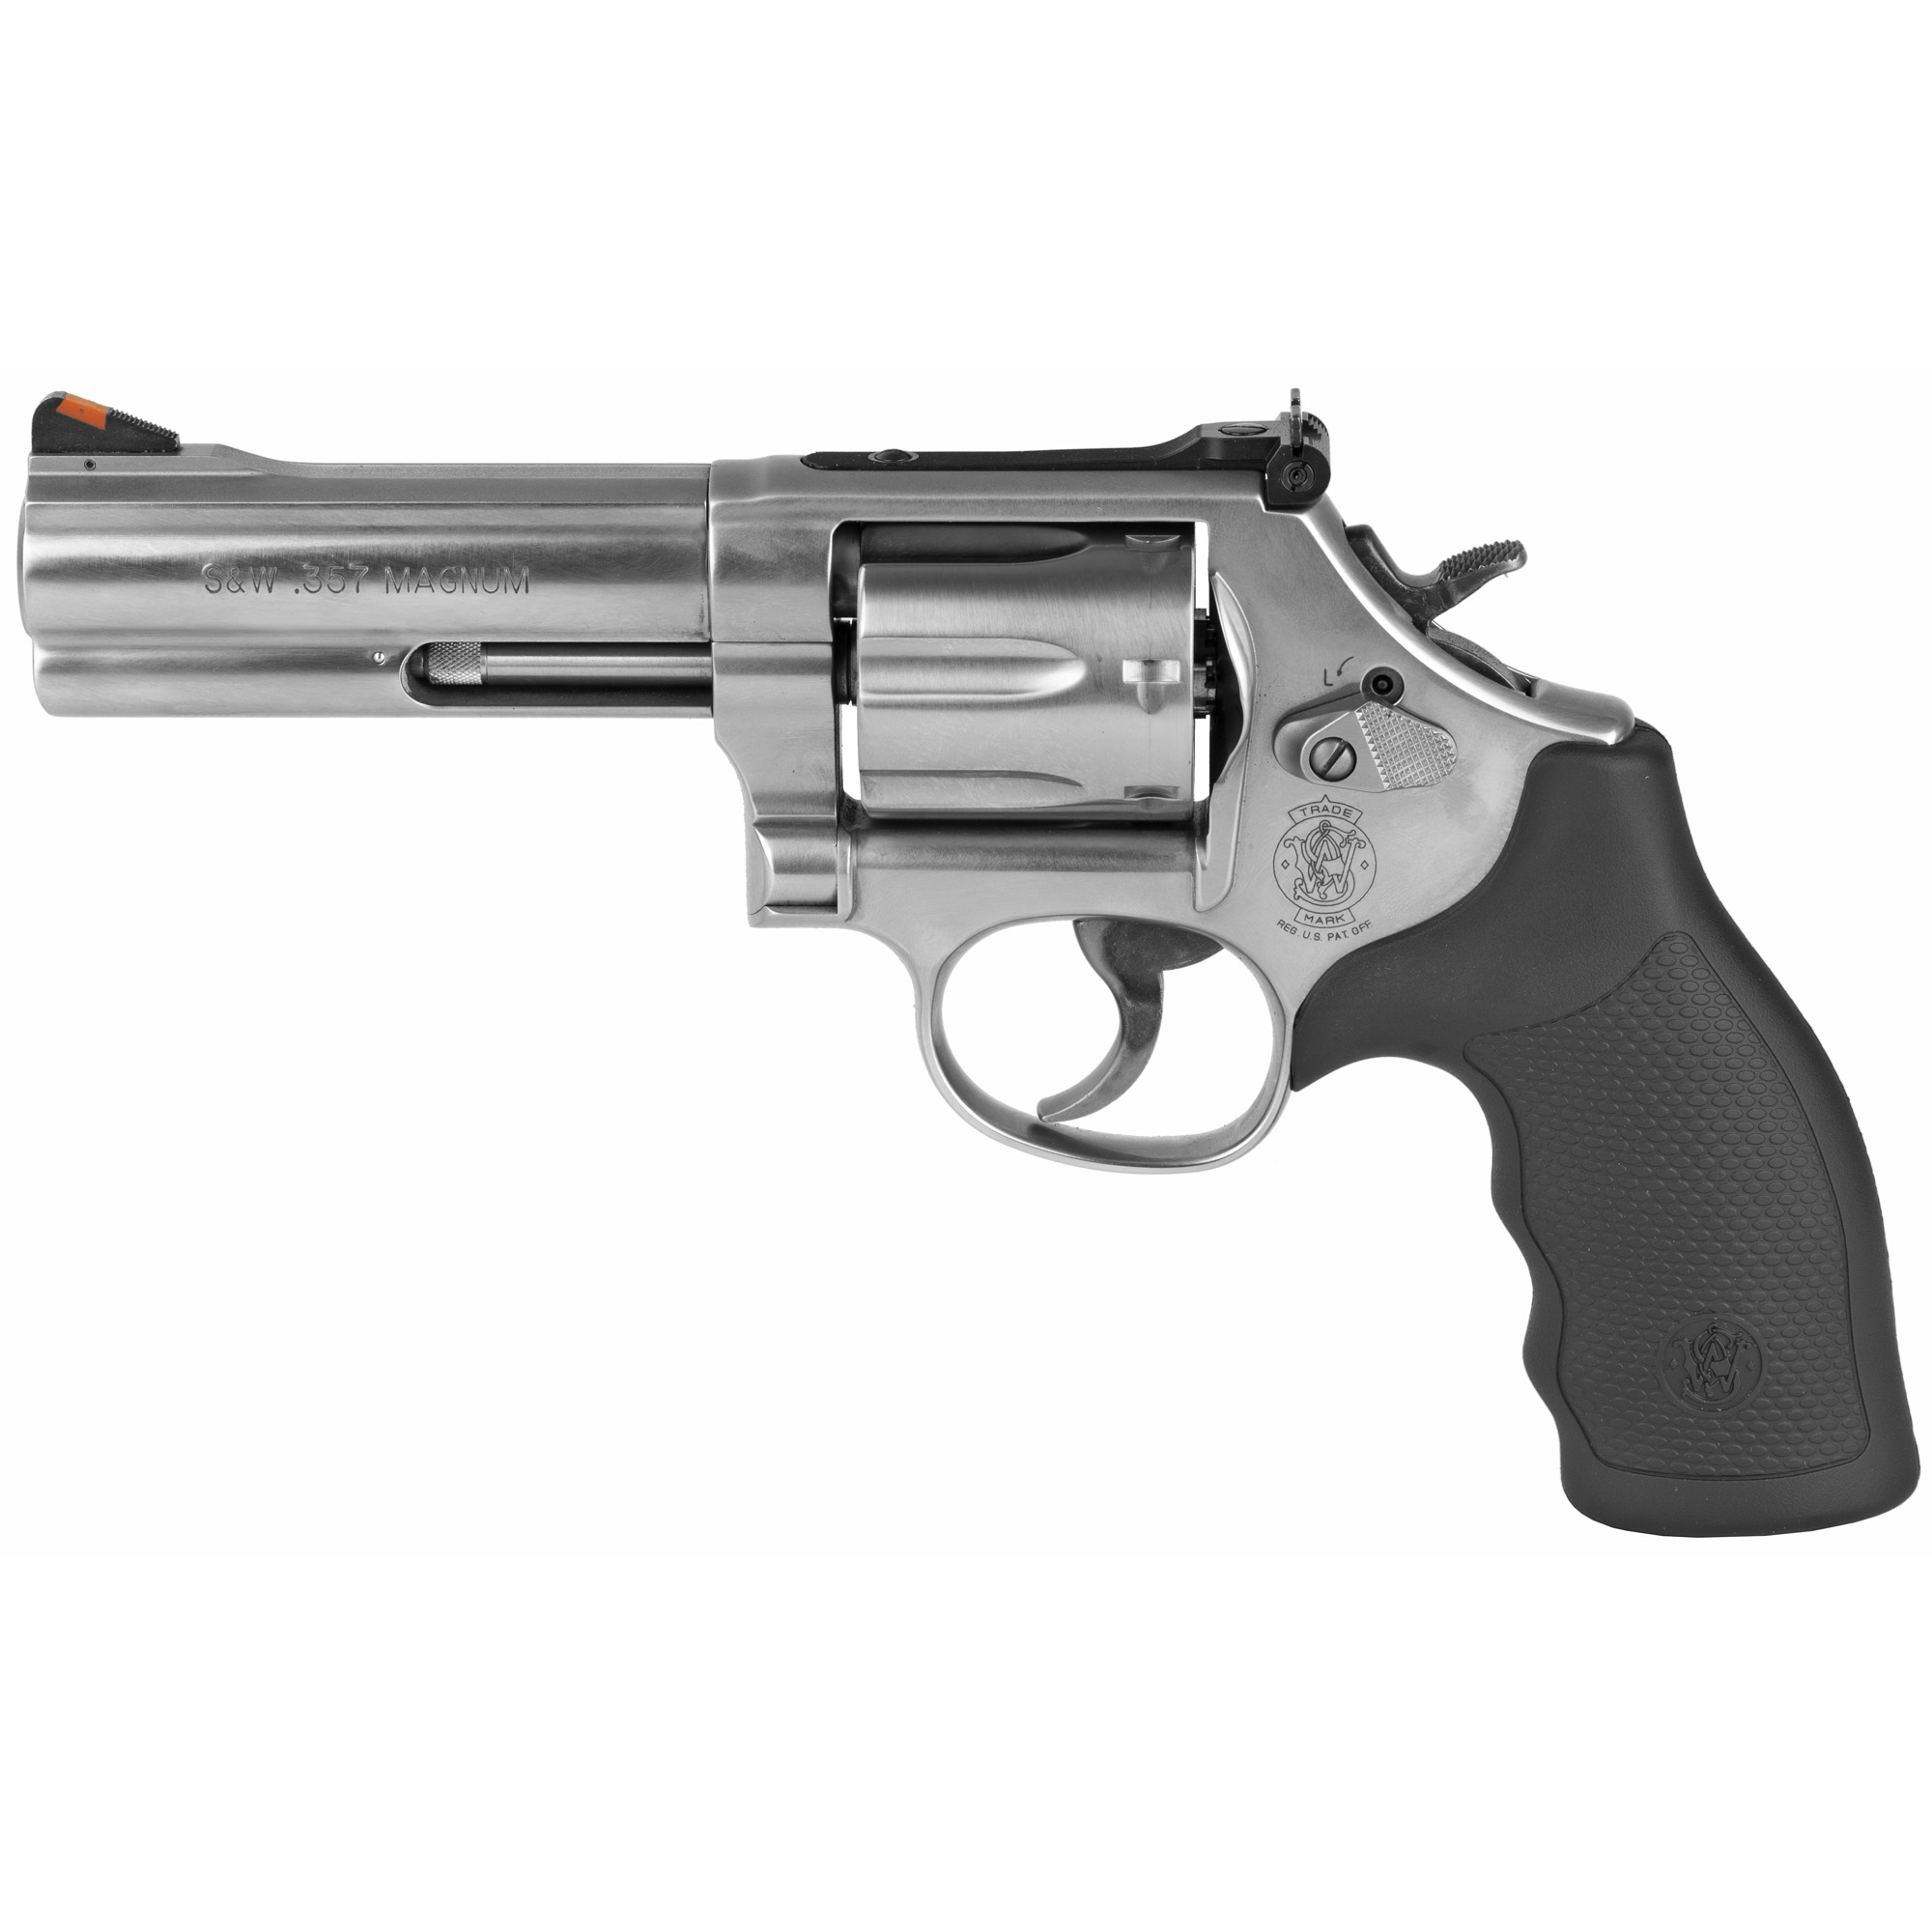 Smith & Wesson Model 686 Plus 7 Shot, 4 inch .357 Magnum